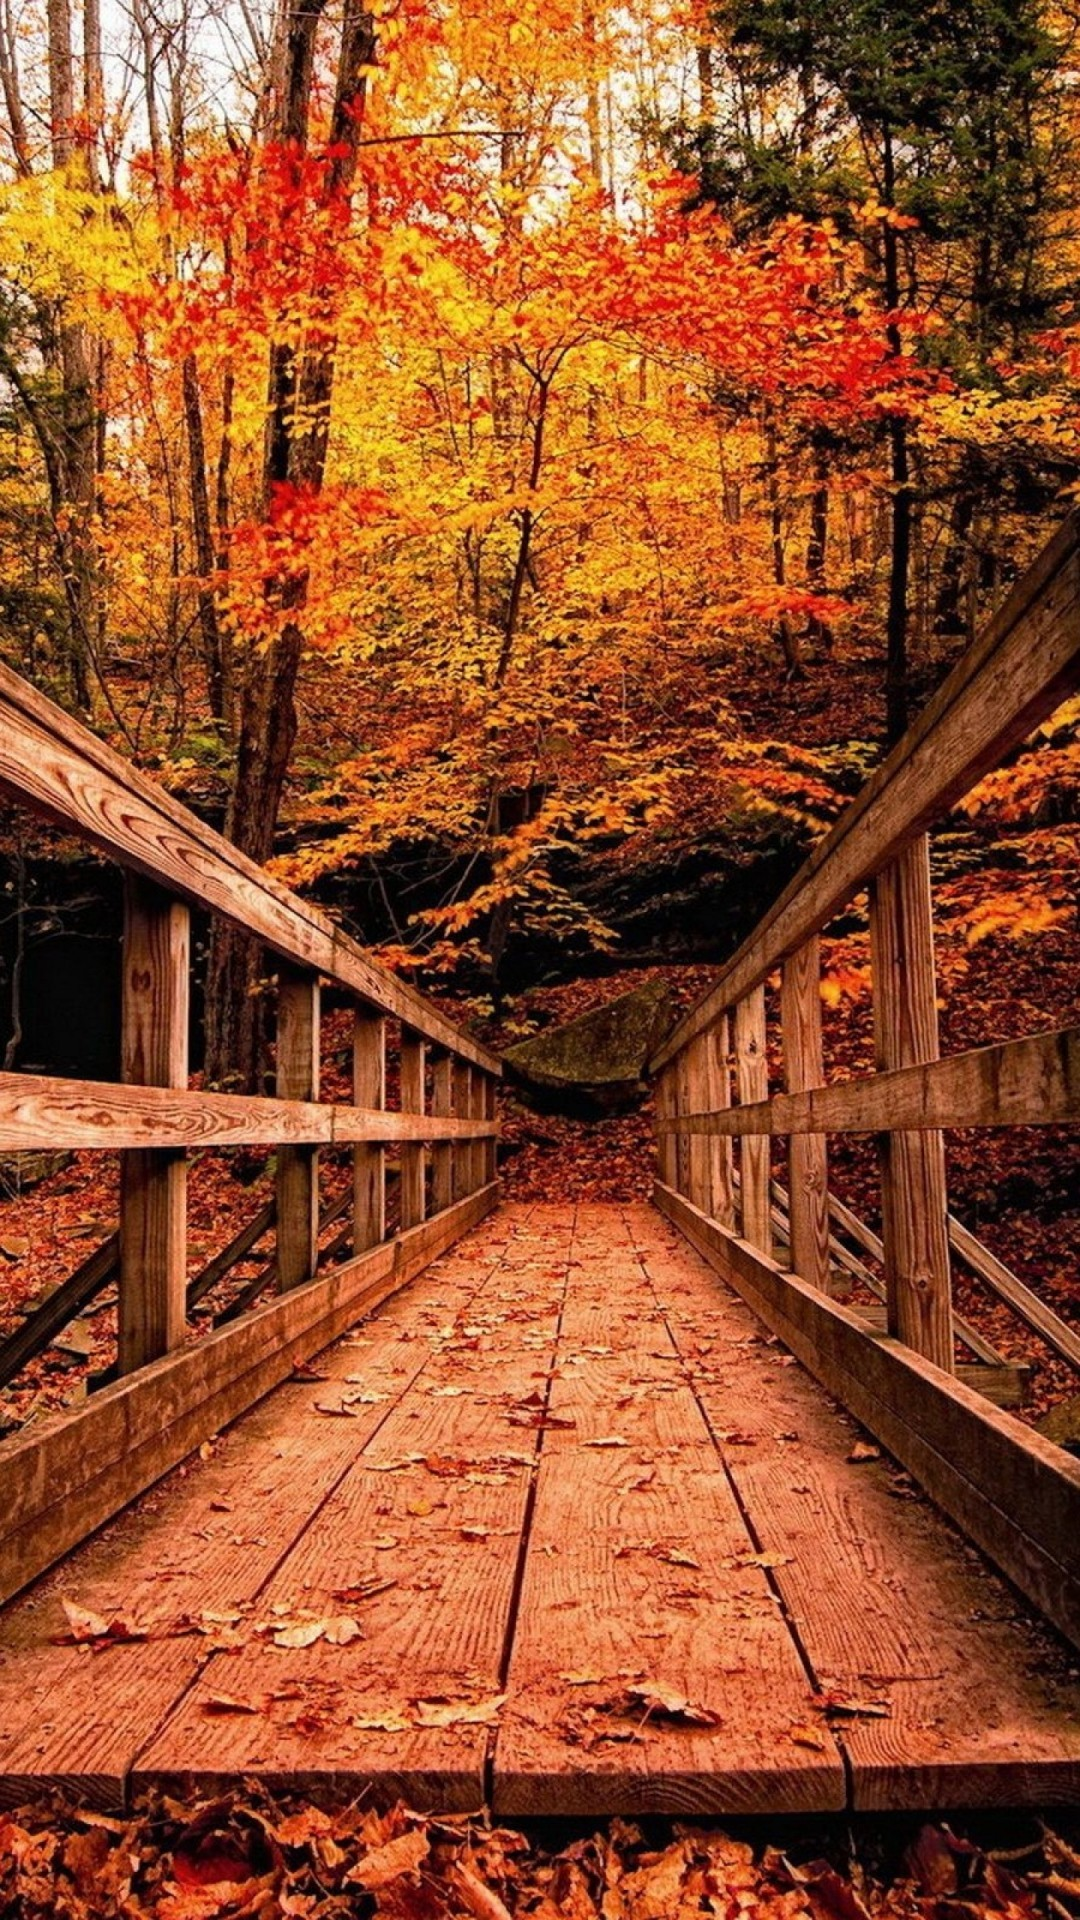 Good Fall Wallpaper For Iphone - wood-bridge-in-autumn-wallpaper-background-1080x1920  Photograph_74465.jpg